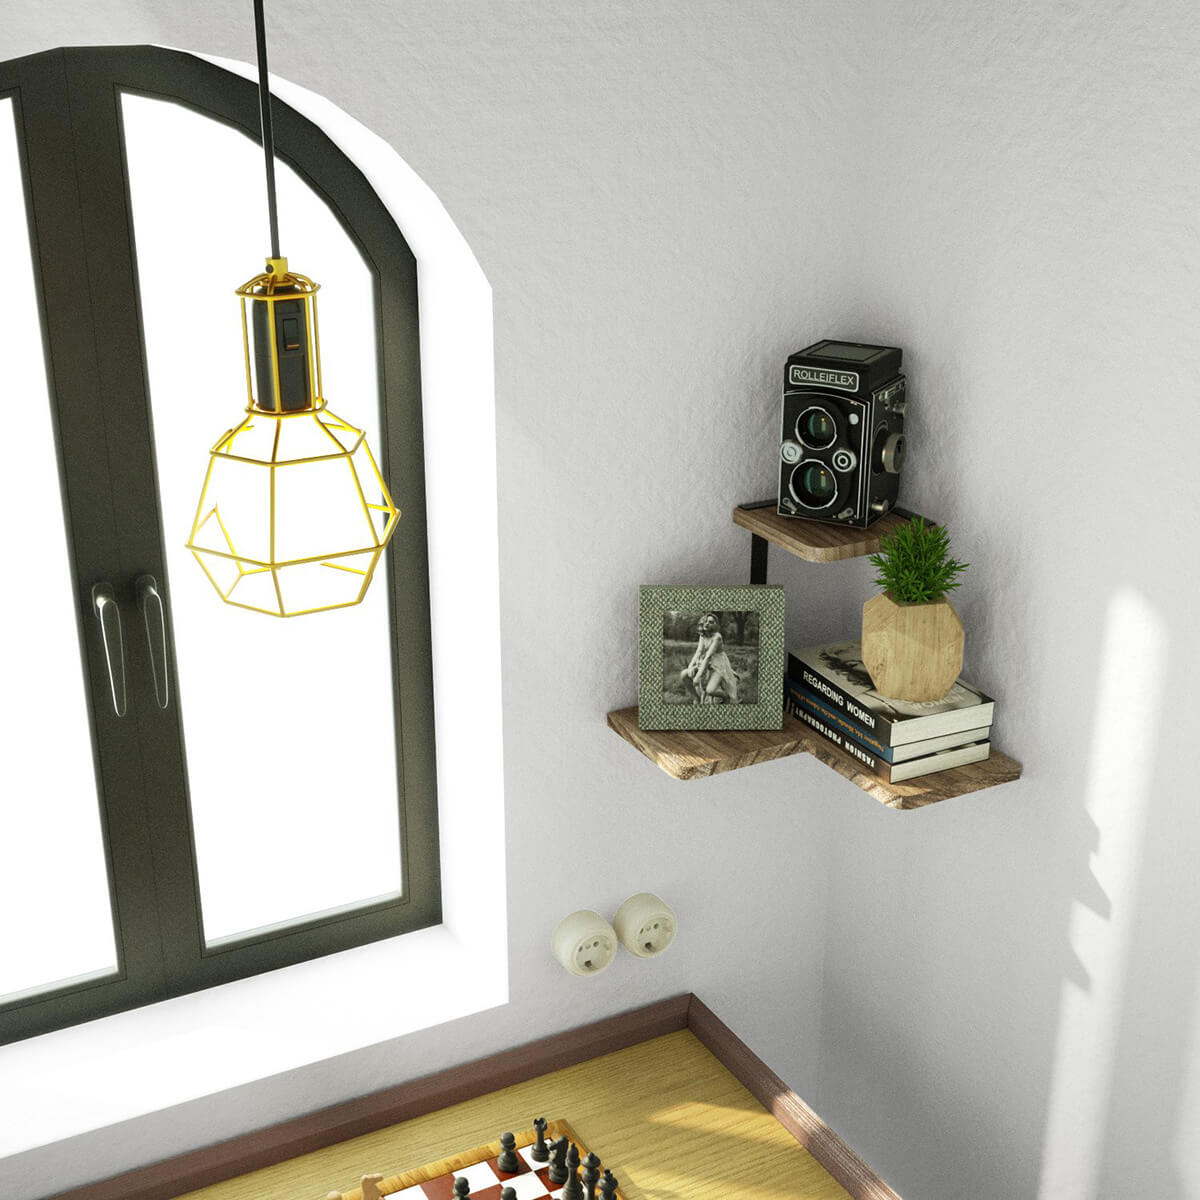 Stunning Lego-Shaped Rustic Corner Shelf